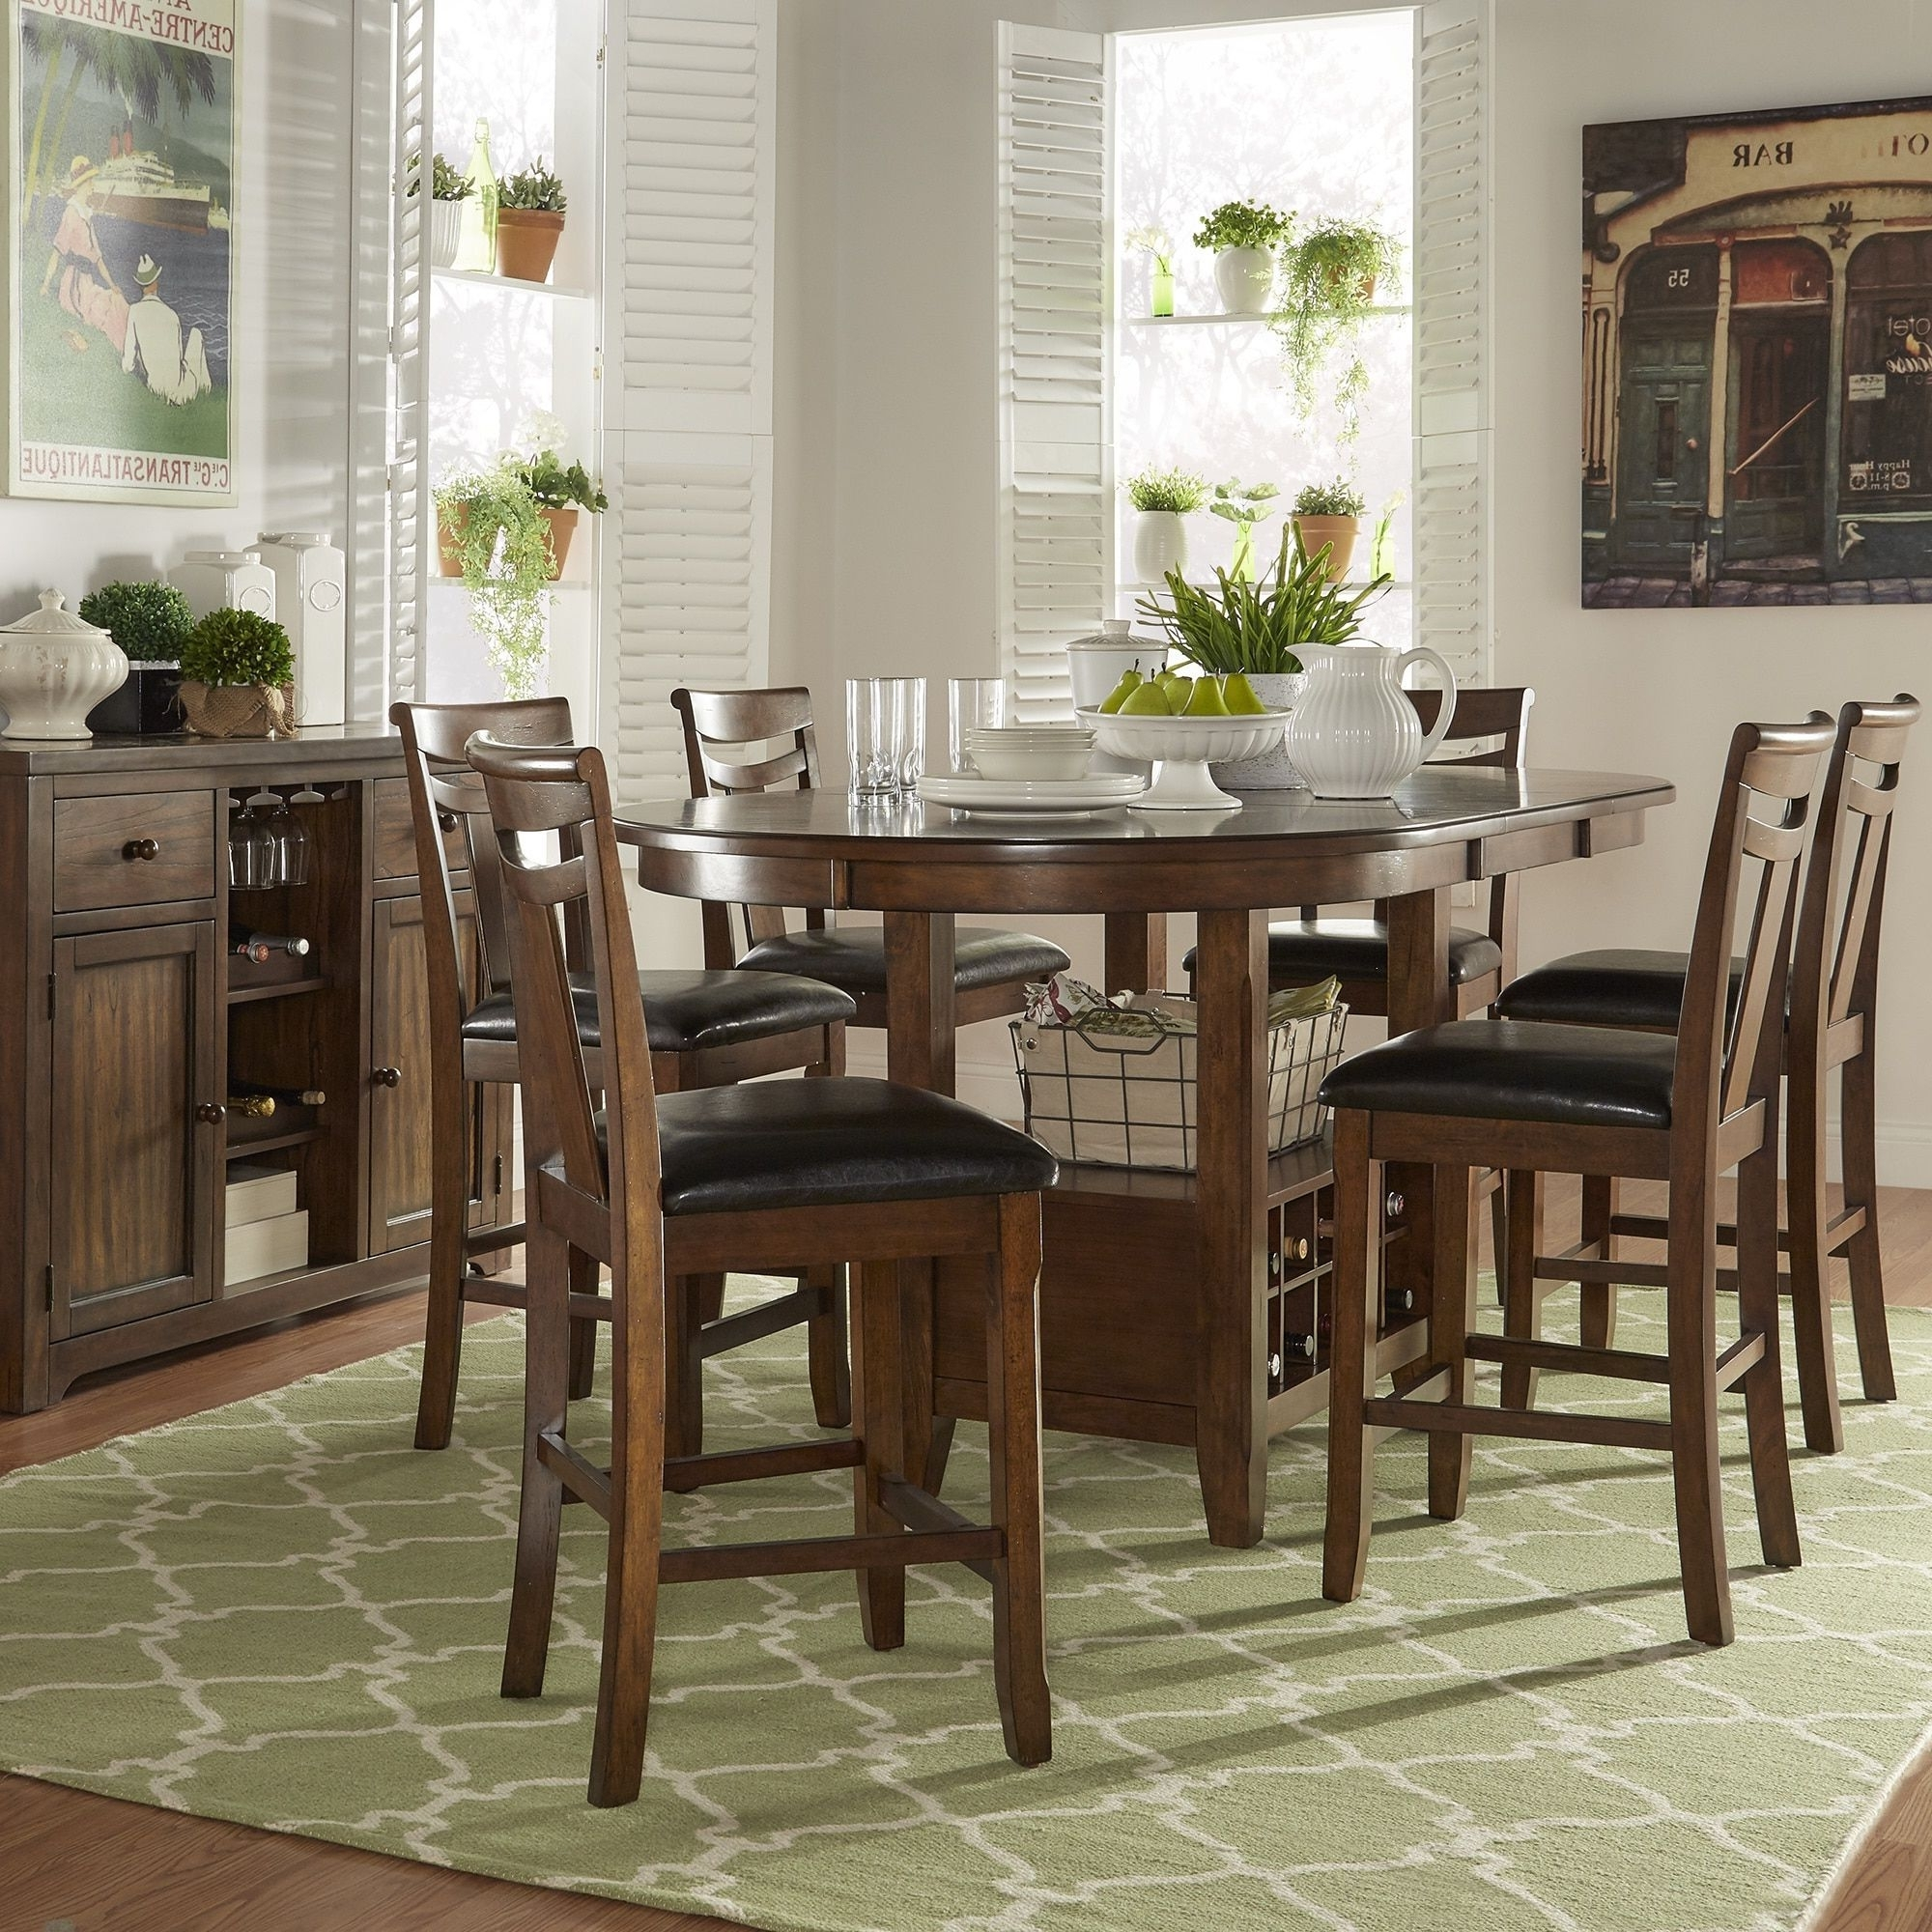 Most Popular Tuscany Brown Wood Wine Rack Counter Height Extending Dining Table Intended For Extending Dining Tables Set (Gallery 25 of 25)